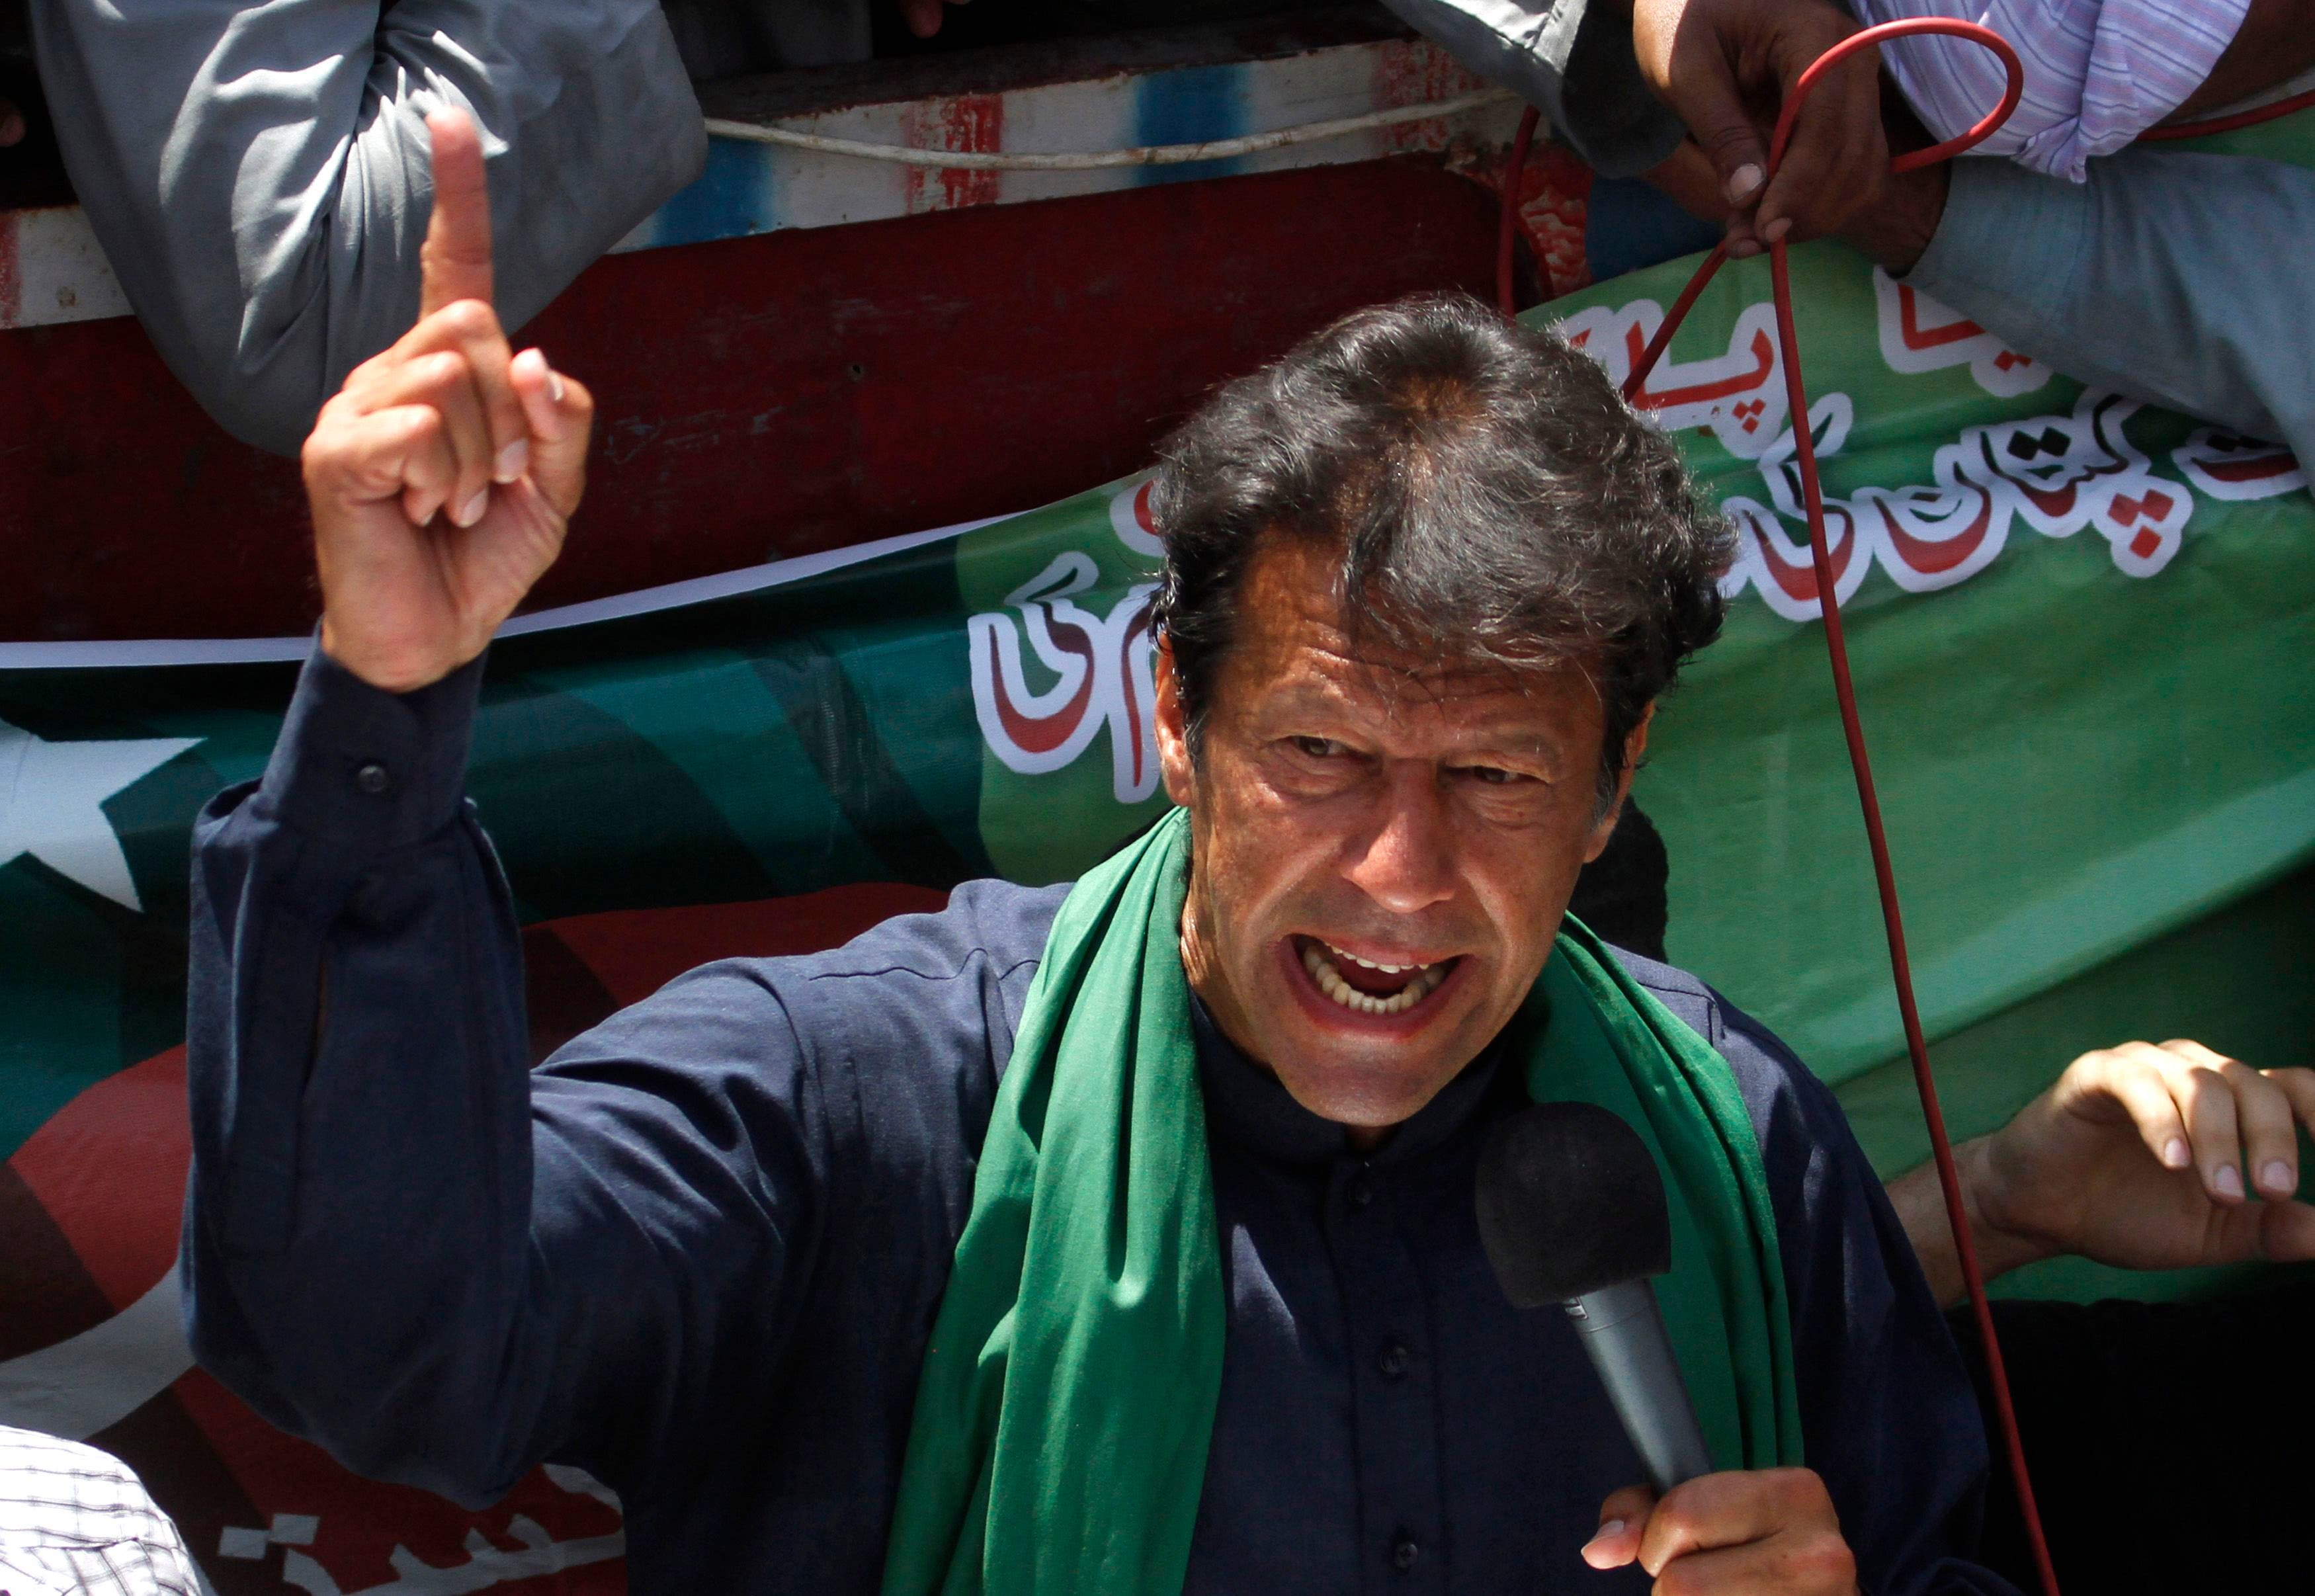 Imran Khan, Pakistani cricketer-turned-politician and chairman of political party Pakistan Tehreek-e-Insaf (PTI), addresses his supporters after his visit to mausoleum of Mohammad Ali Jinnah, founder and first governor-general of Pakistan, during an election campaign in Karachi in this May 7, 2013 file photo. (REUTERS)